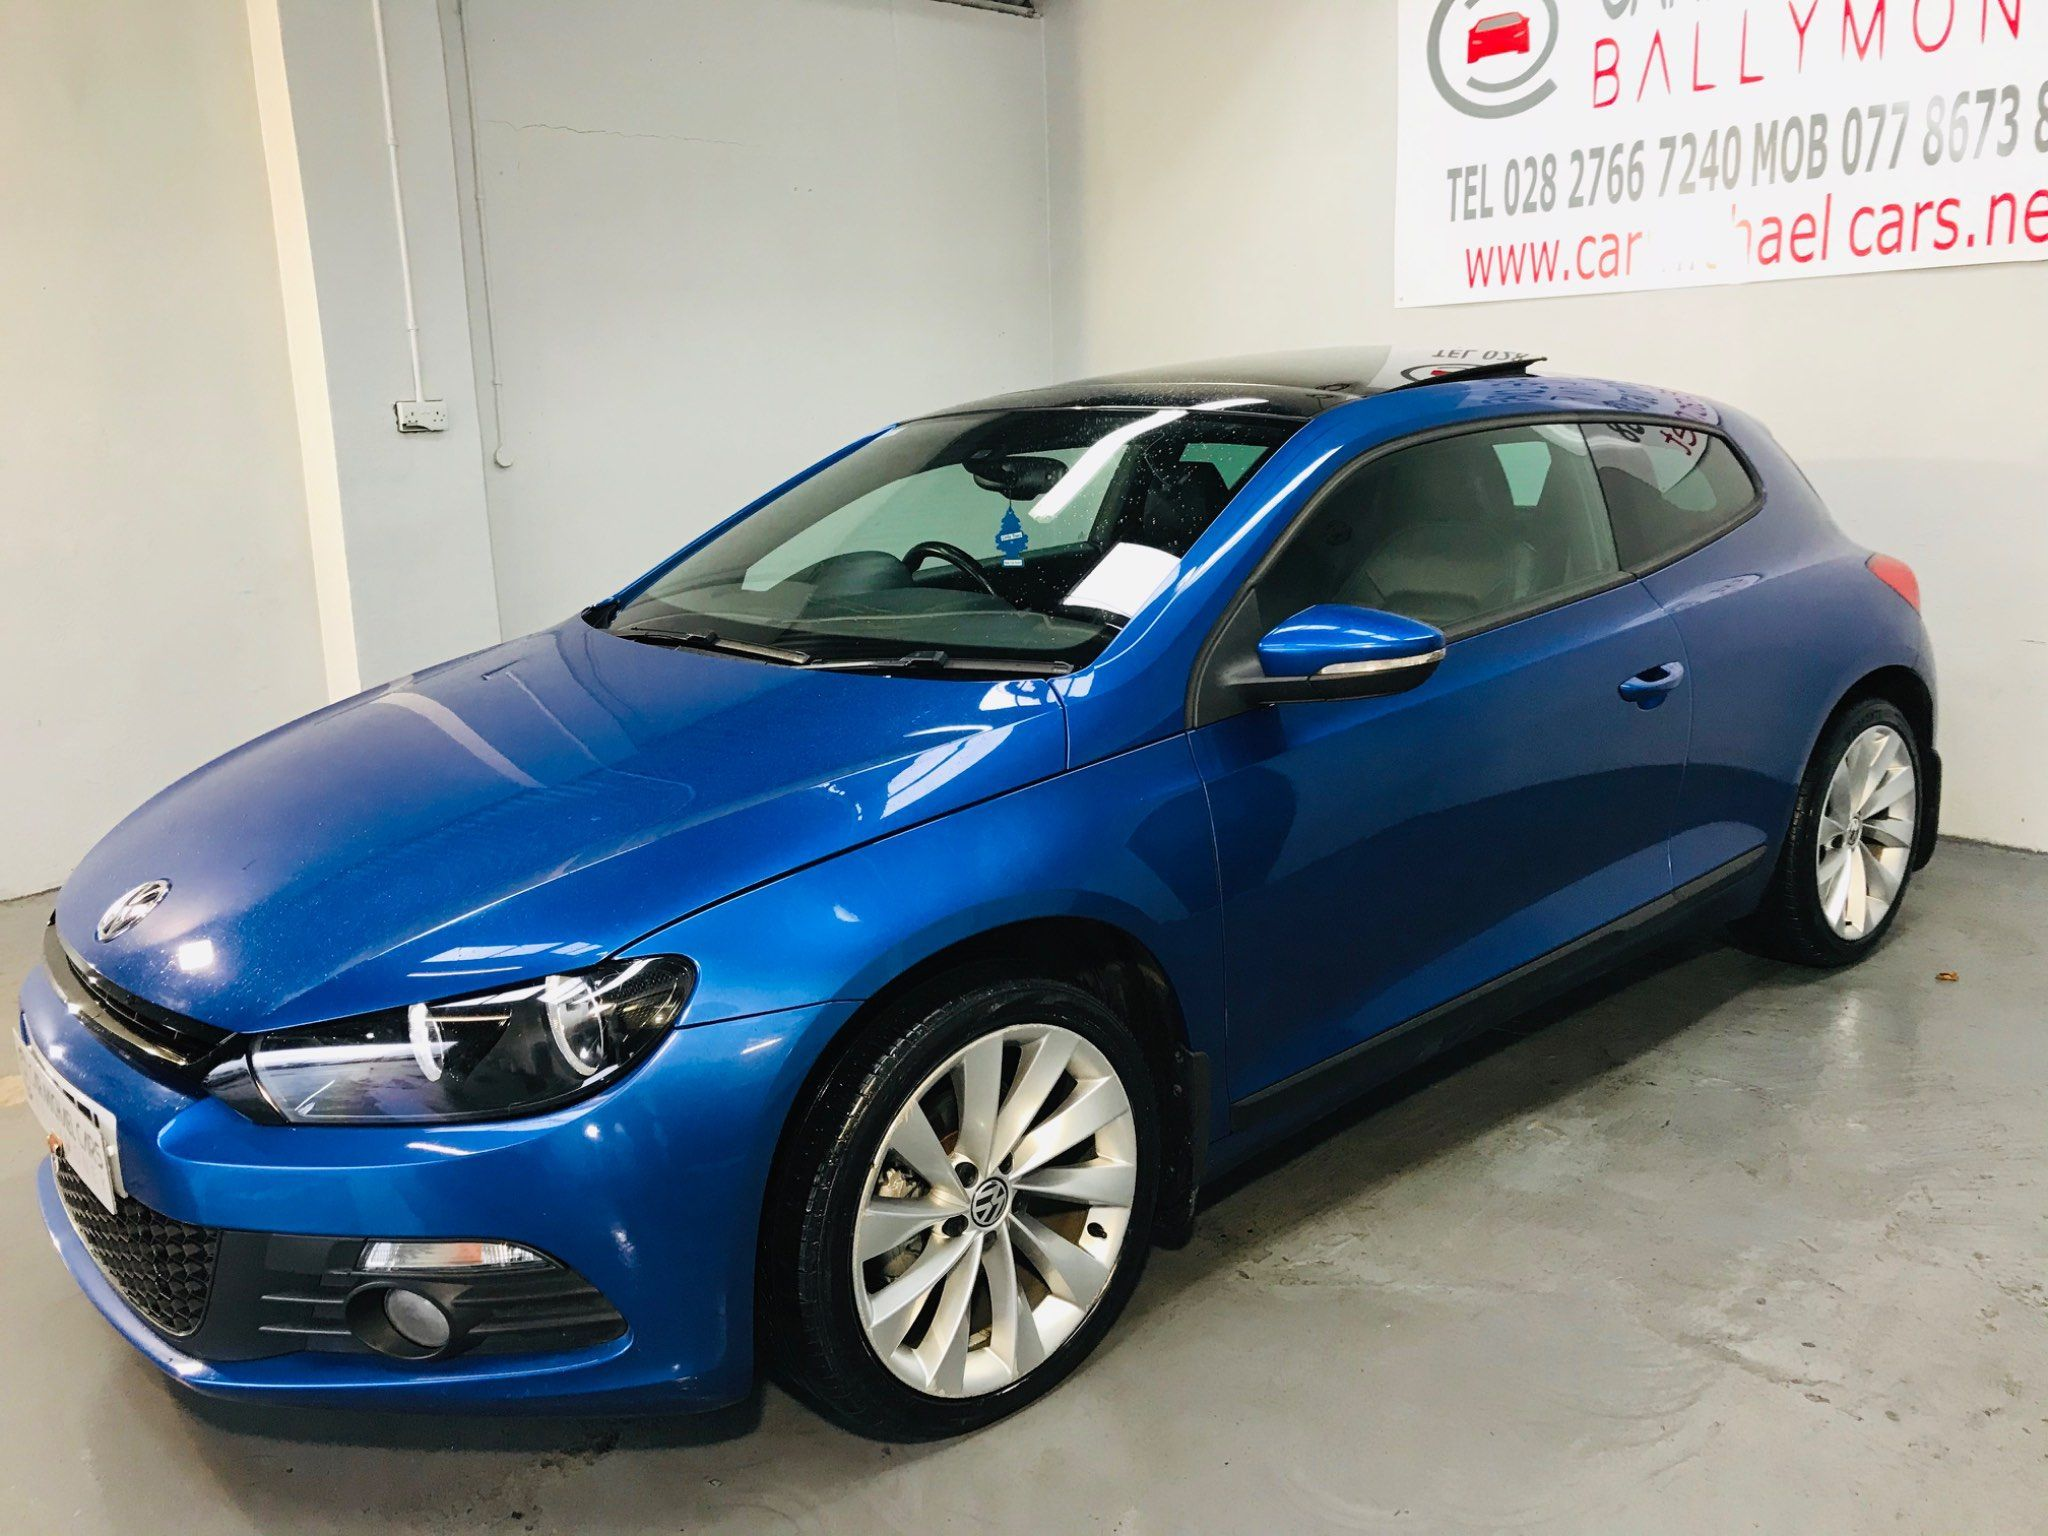 2013 VOLKSWAGEN Scirocco 2.0 TDI BlueMotion Tech GT Diesel Manual BLUE, 94K, LEATHER,PANROOF – Carmichael Cars Ballymoney full